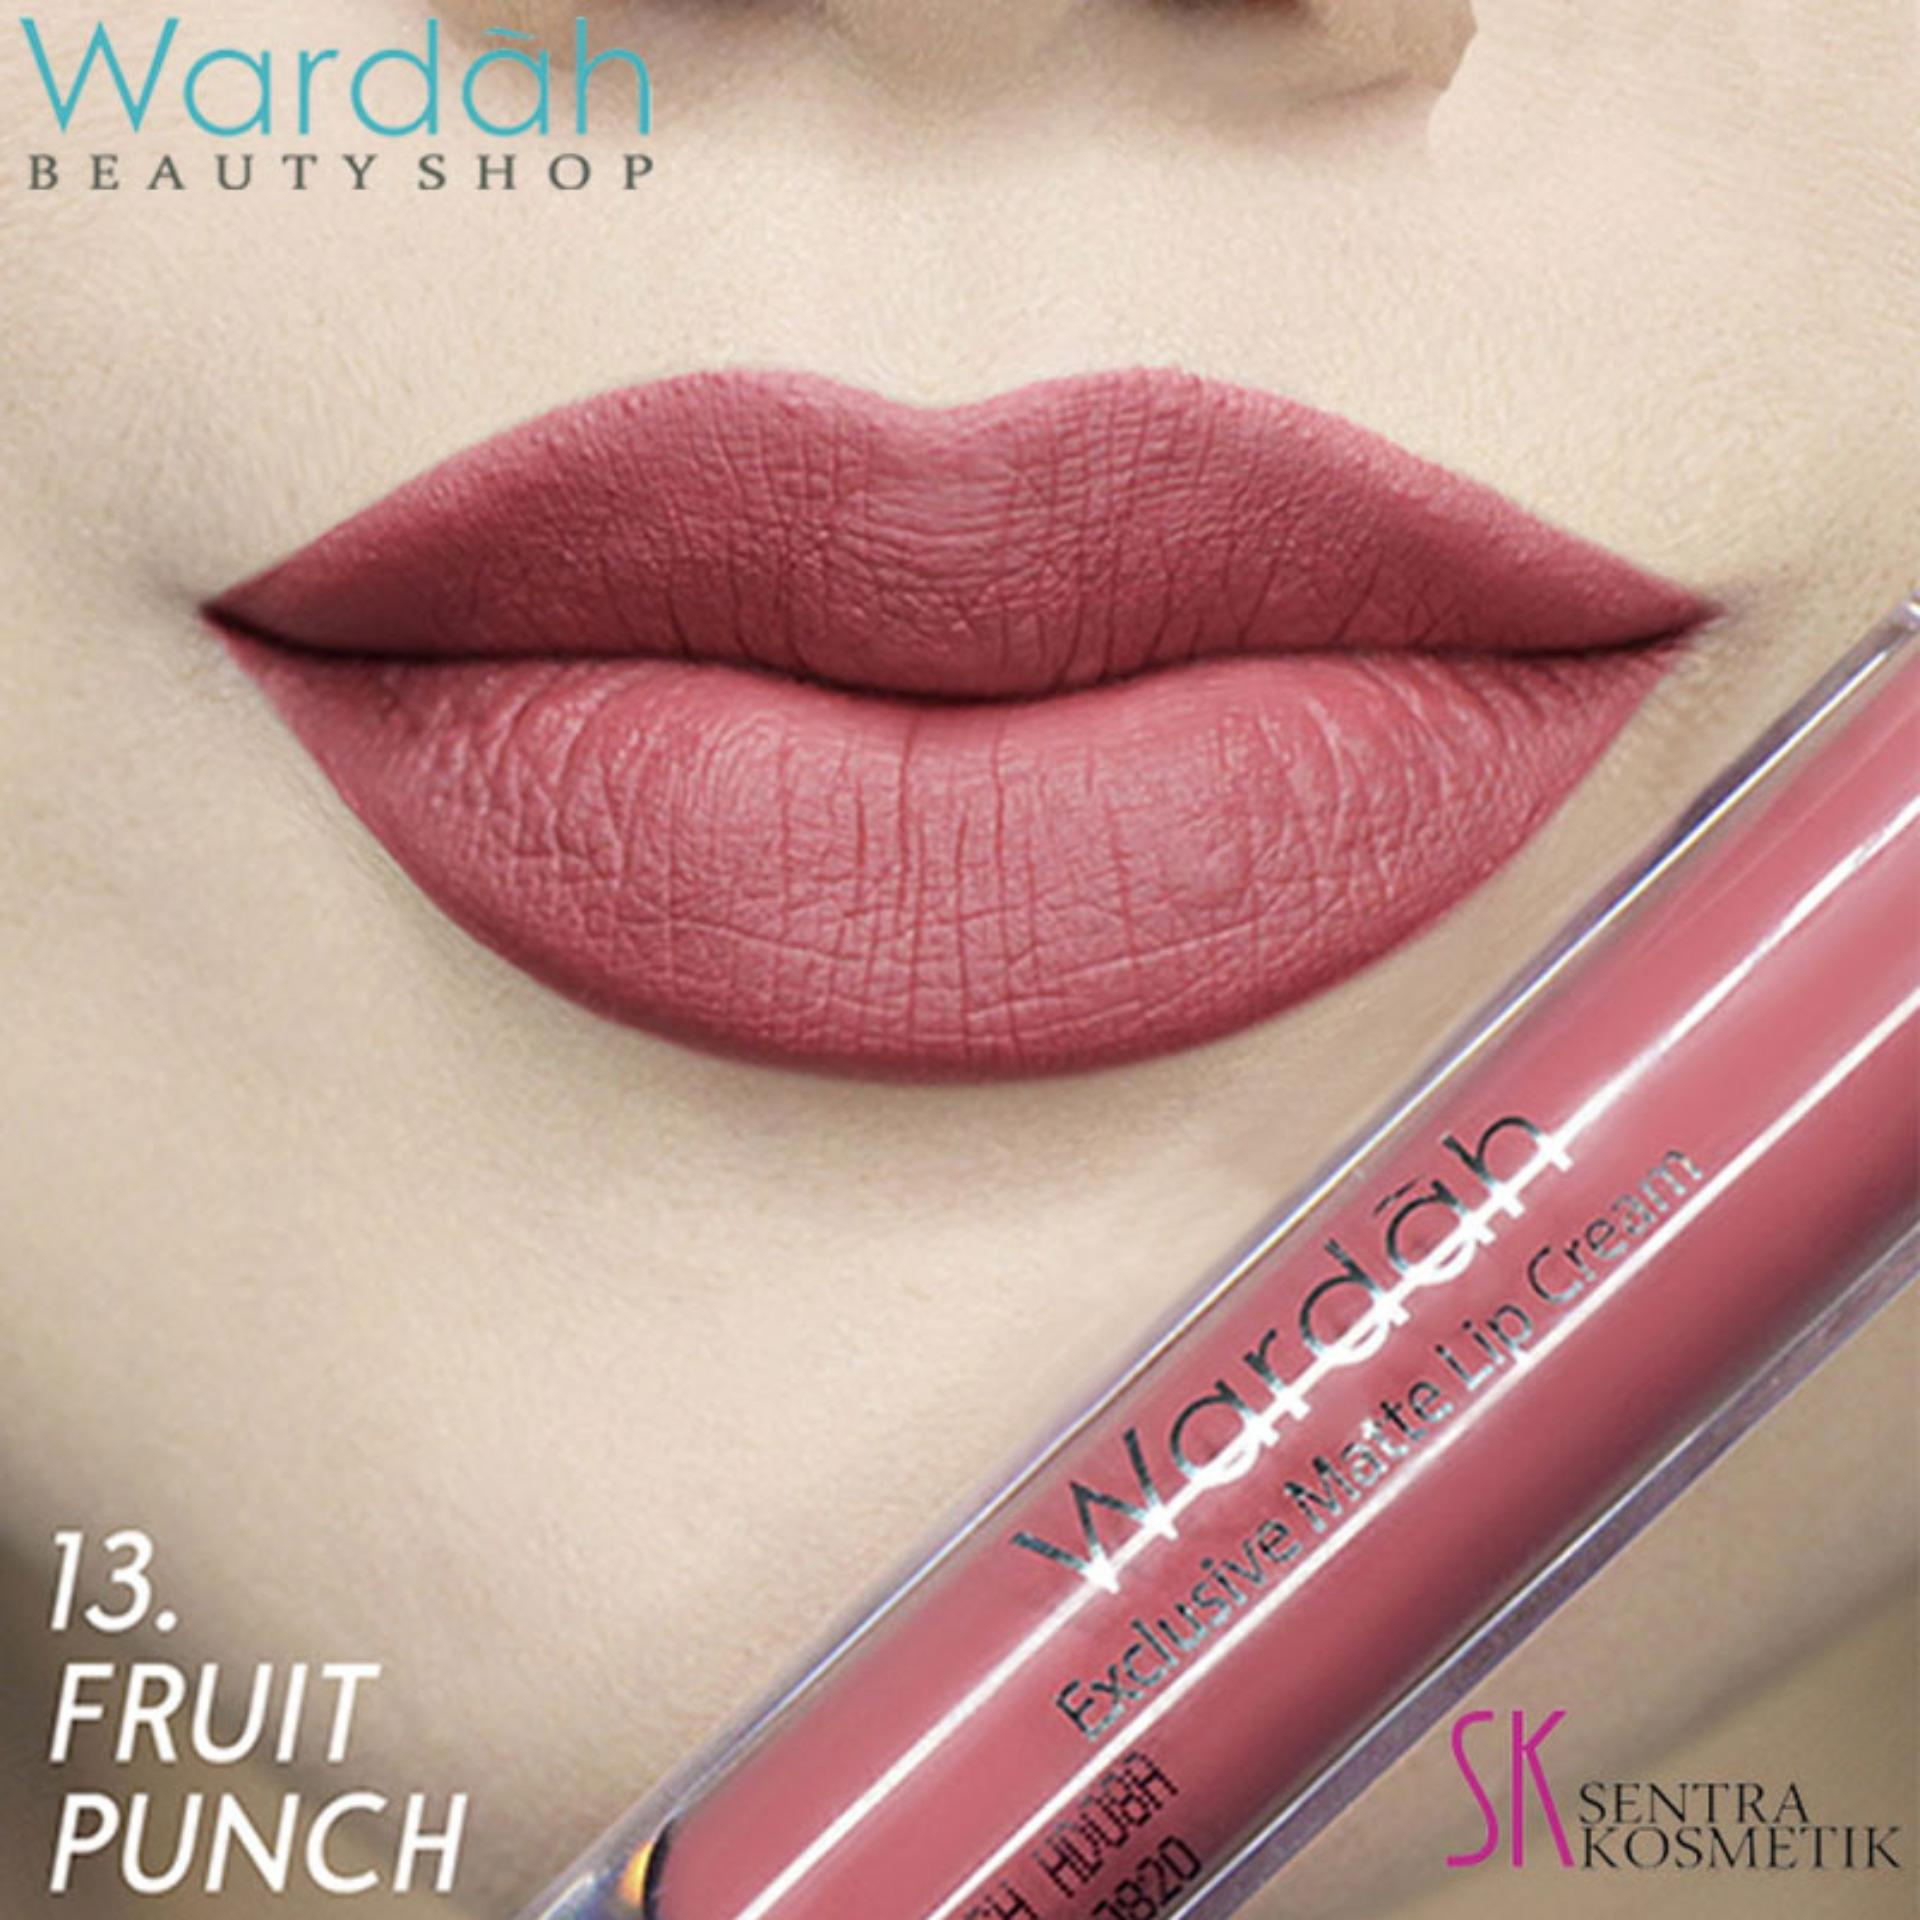 Wardah Exclusive MATTE LIP CREAM No 13 - FRUIT PUNCH